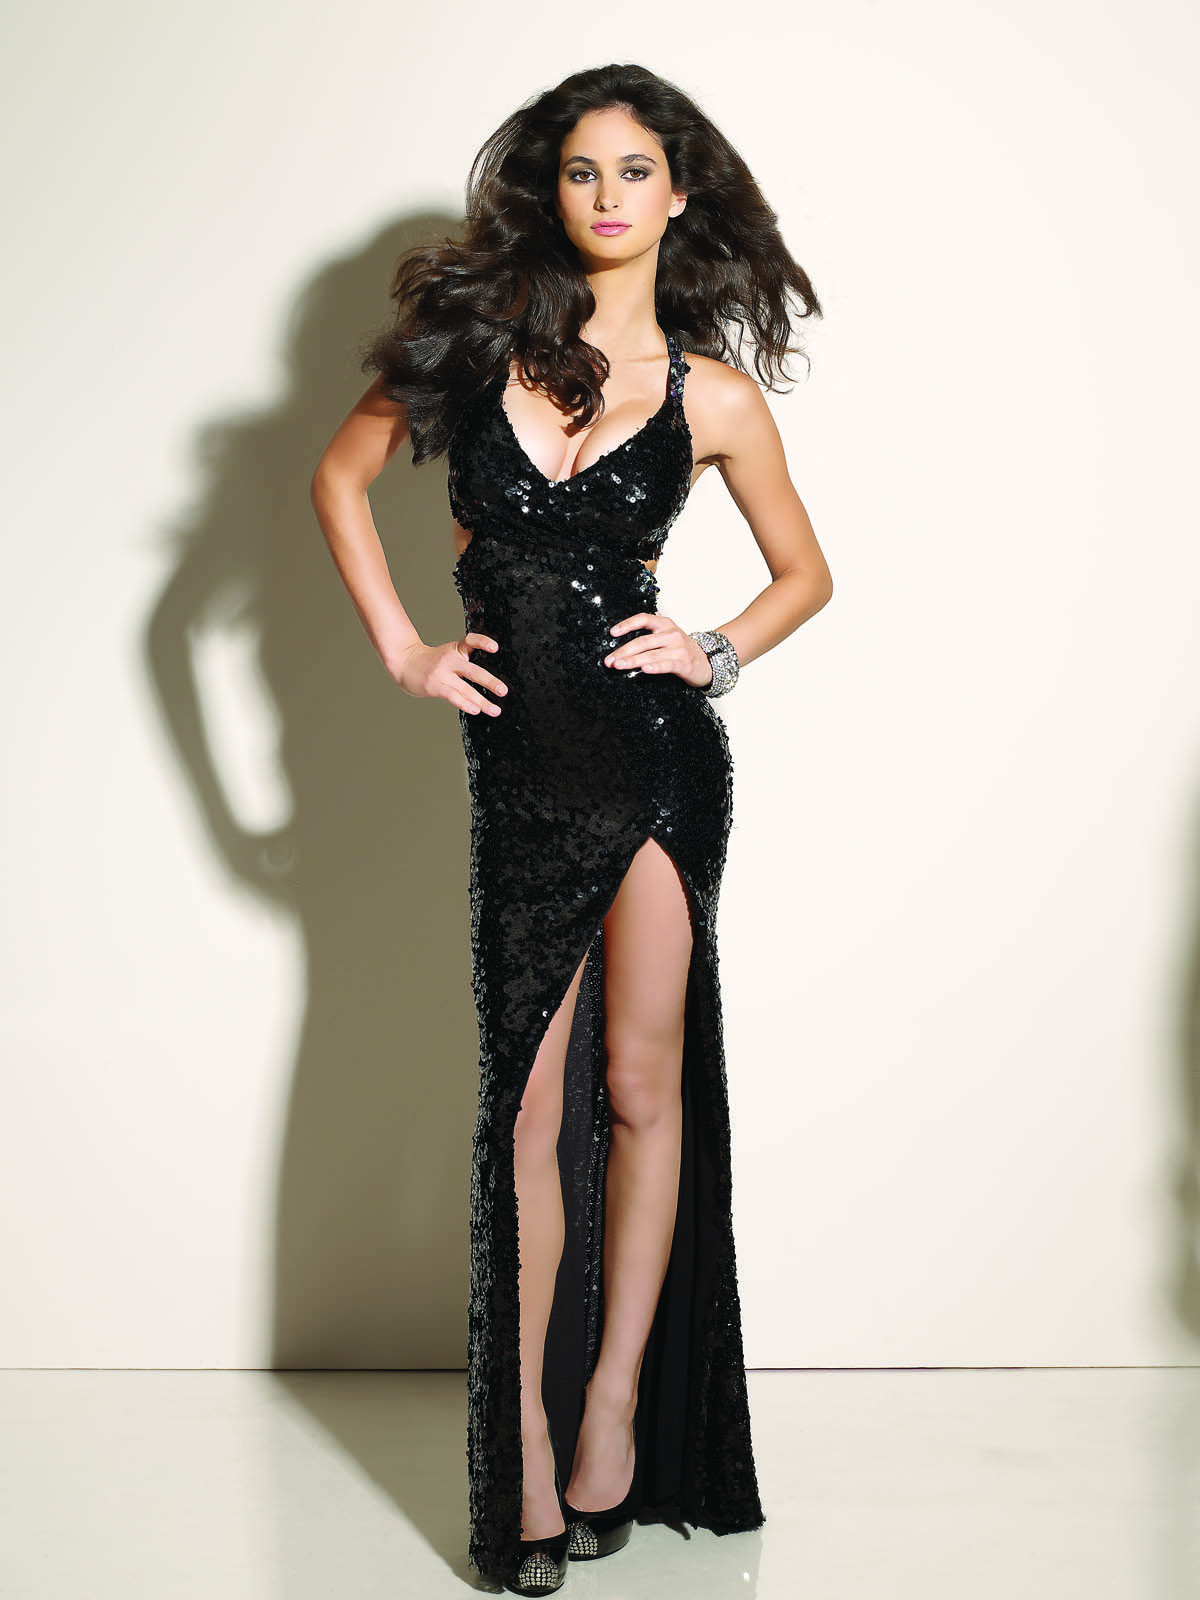 Black dress for prom night - This Dress Is The Perfect Little Black Dress Everyone Should Have In Their Closets It Has Straps That Lead Into A Gorgeous Open Back